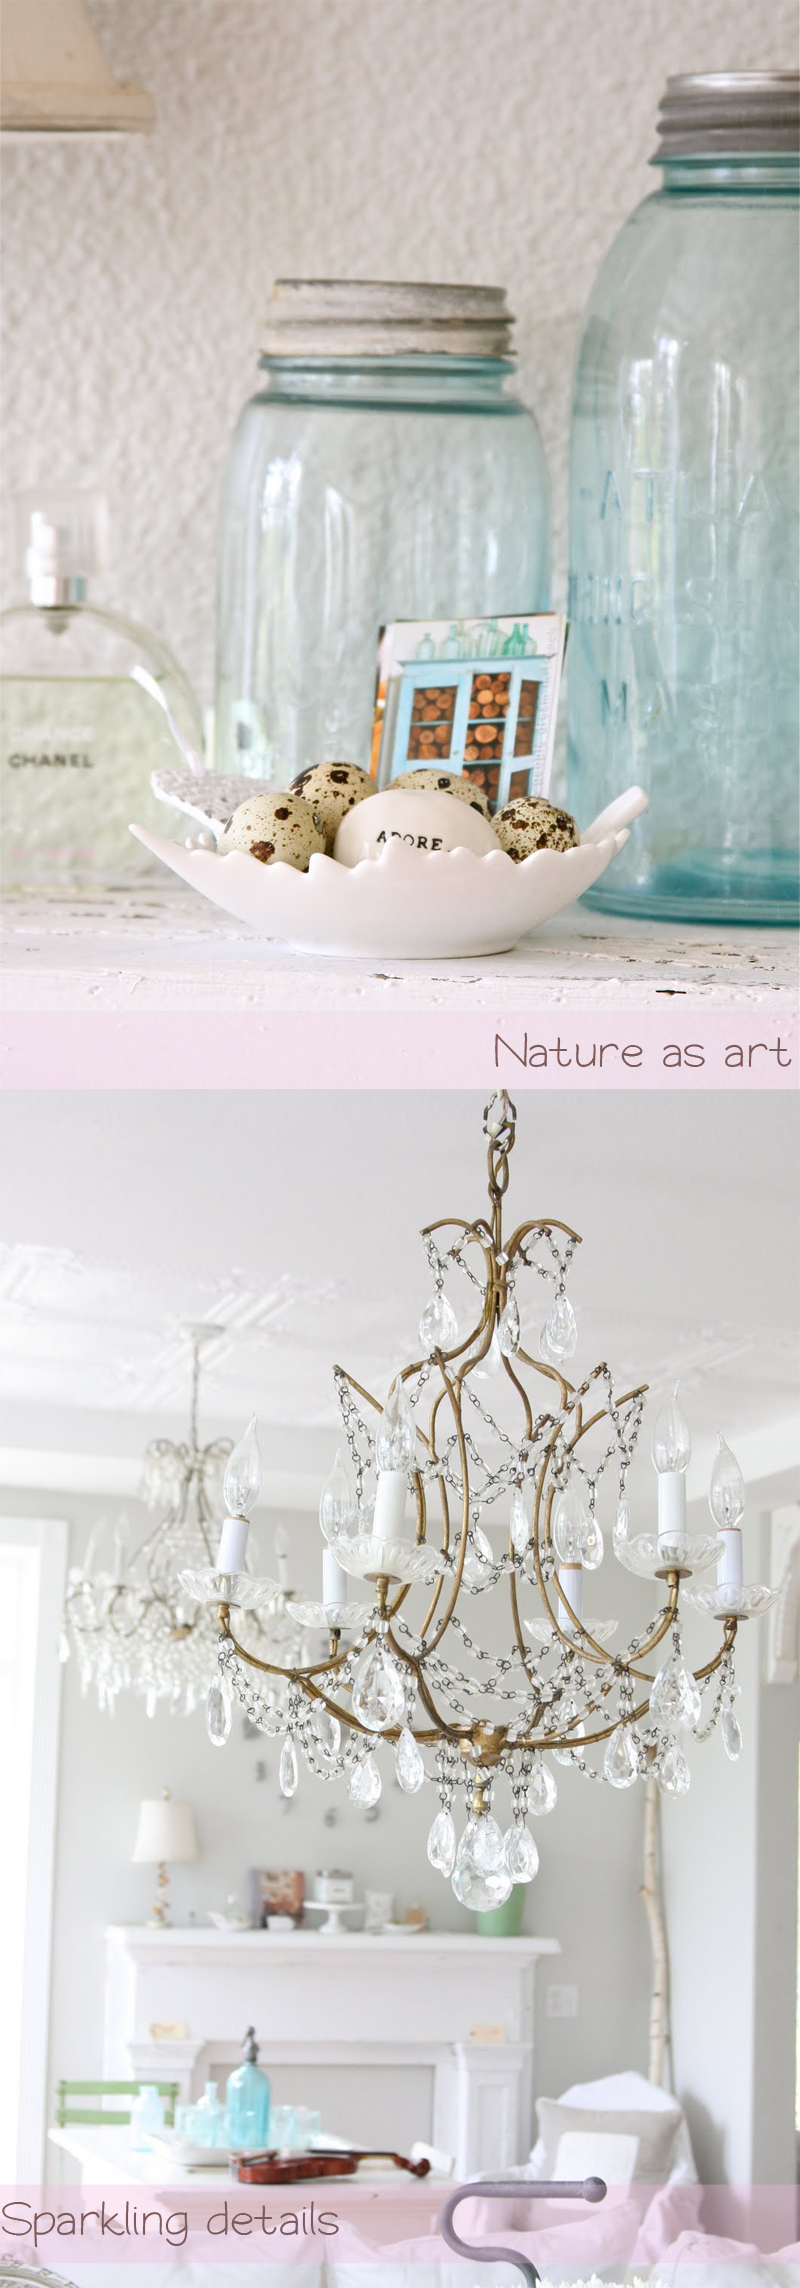 A Beach Cottage + Dreamy Whites Blog